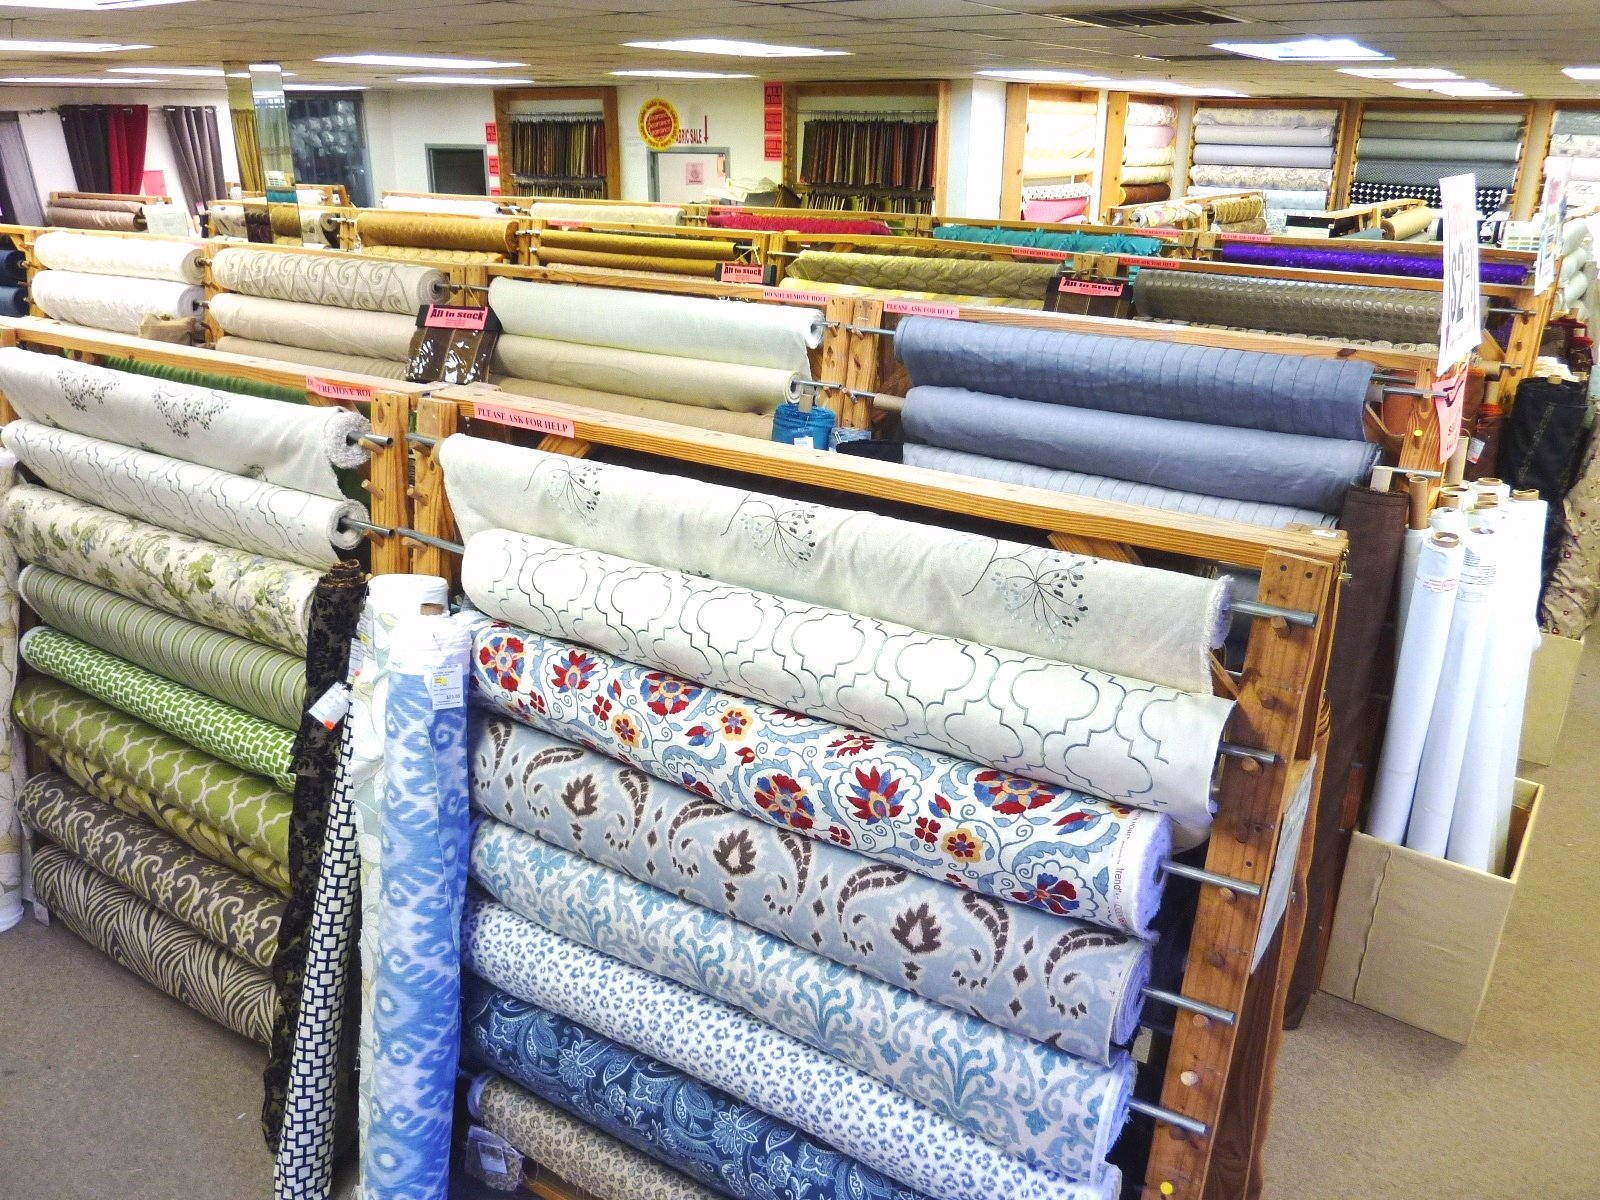 Image search Sears Outlet Houston TX 1600x1200